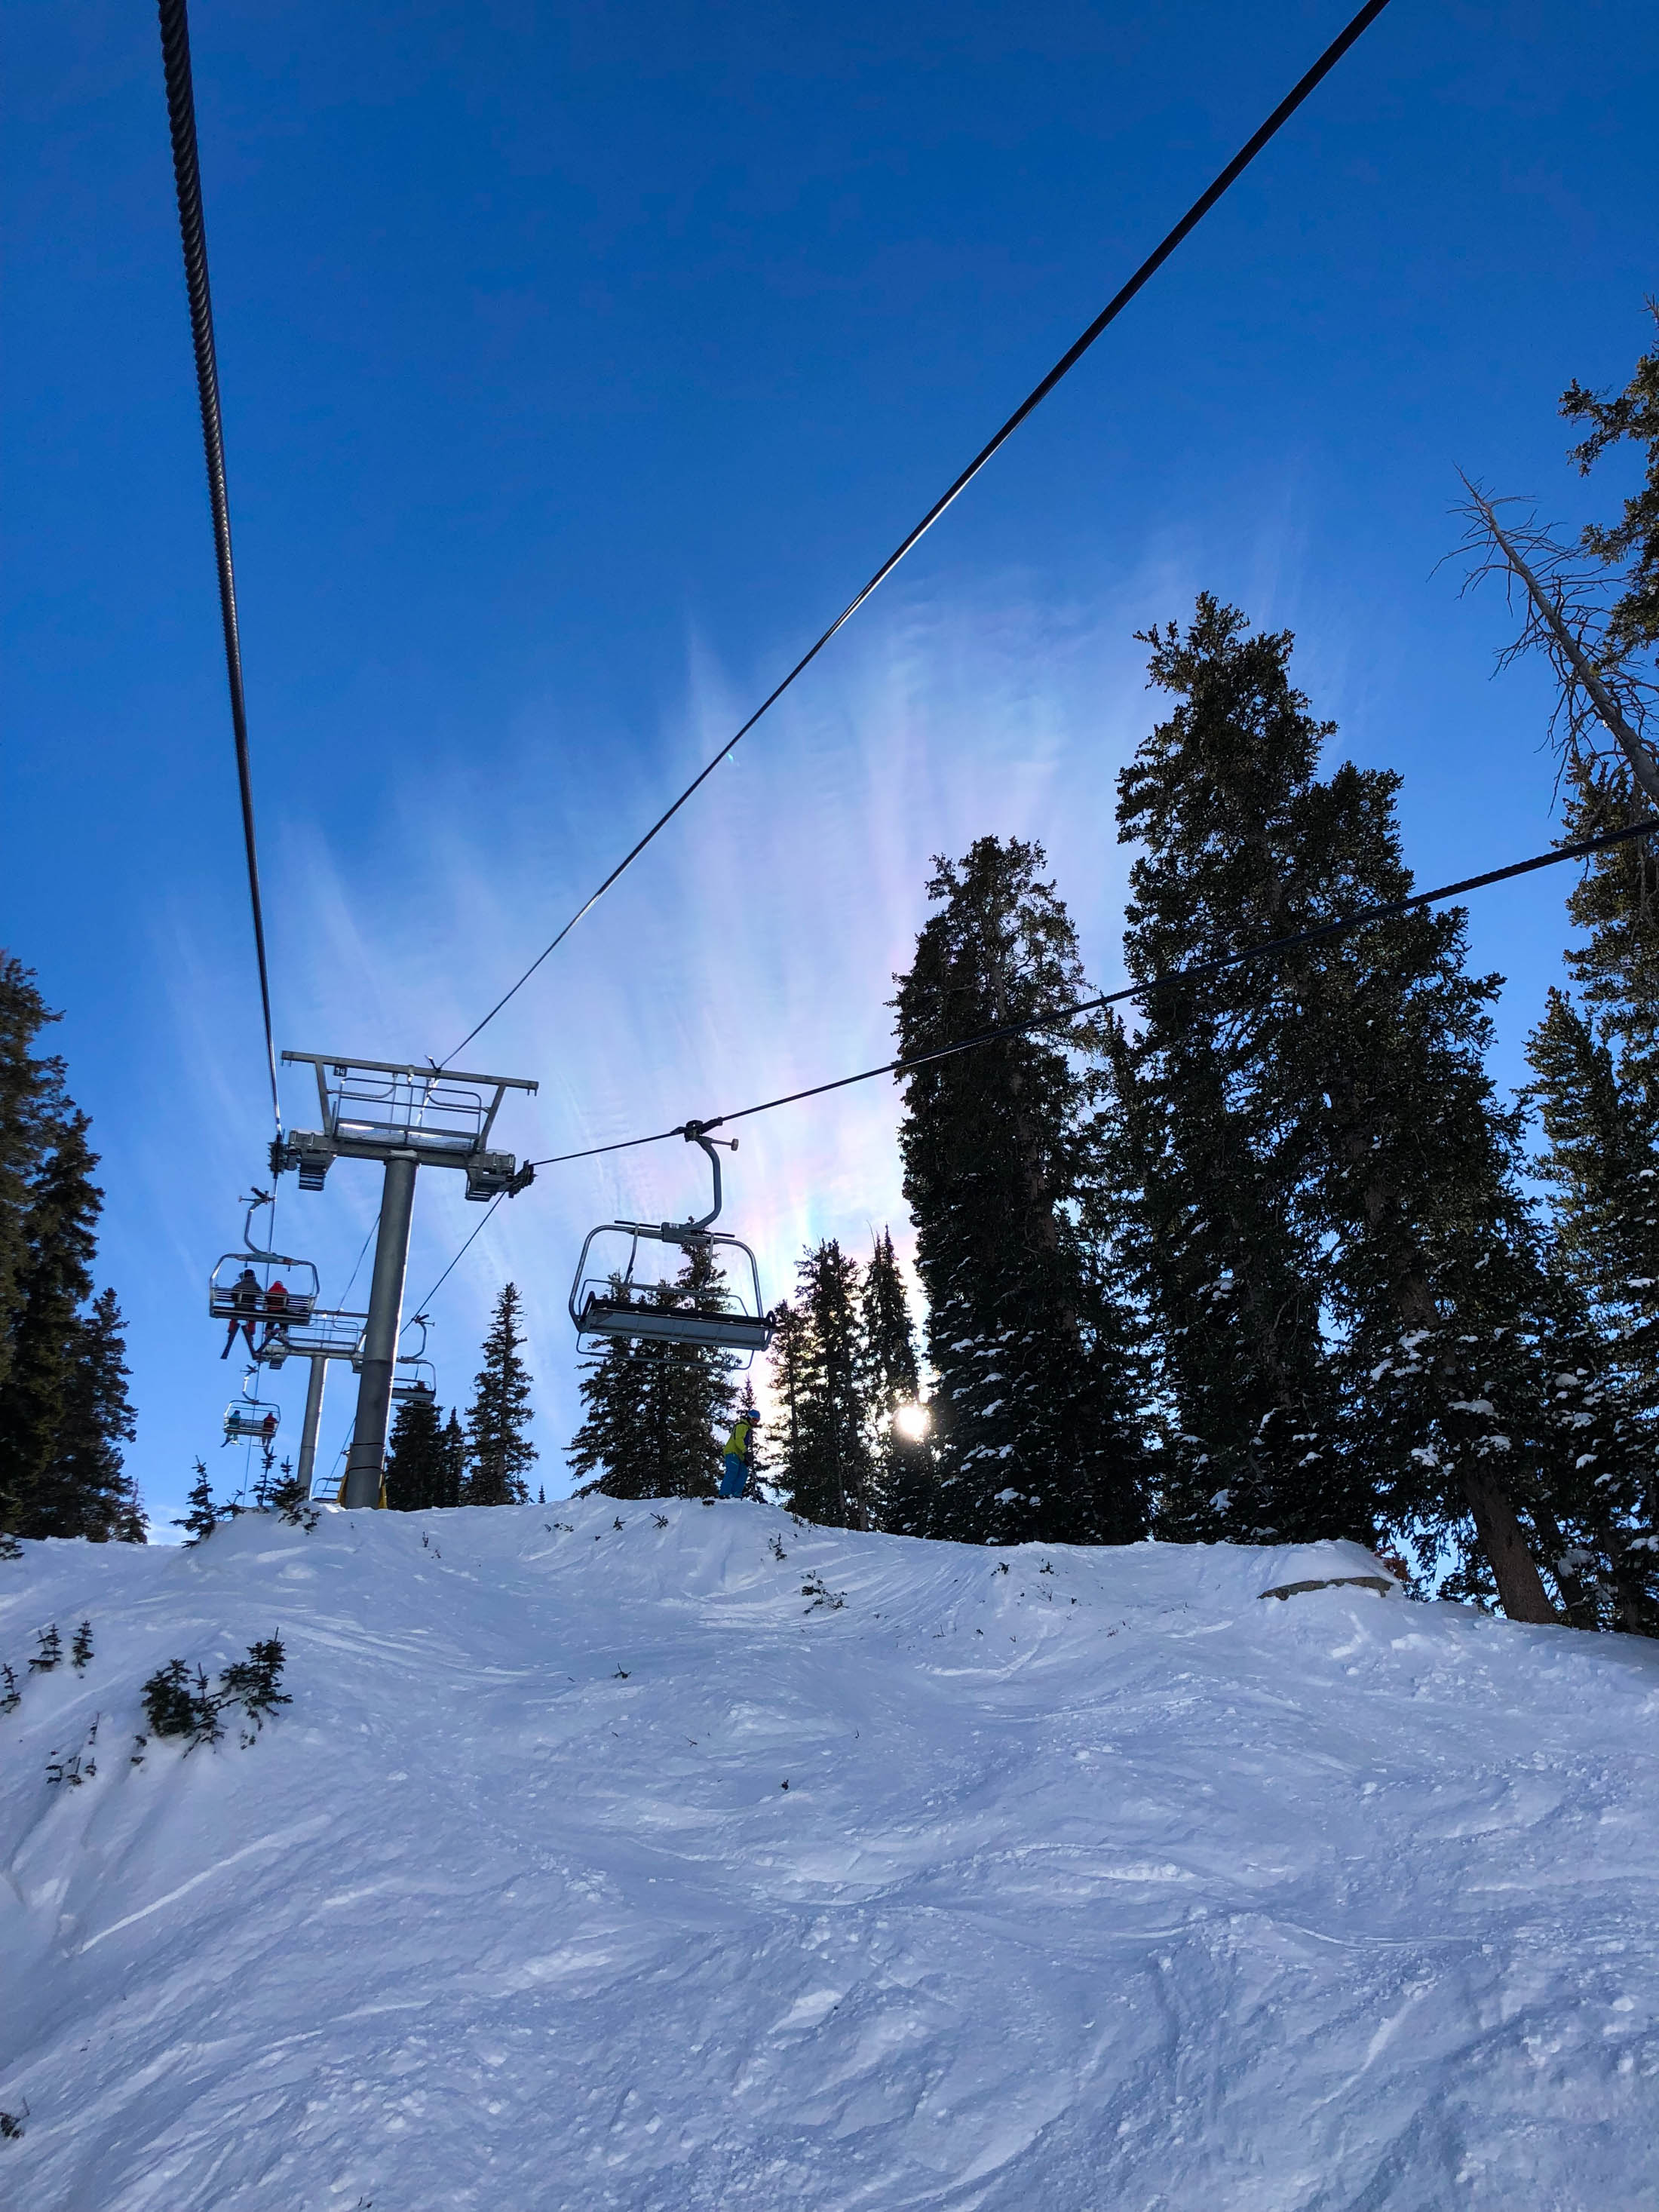 Heading to Alta? So were we — but tried Snowbird instead. Ideas of a family ski resort might differ — so here's our view of the slopes, food & après ski.